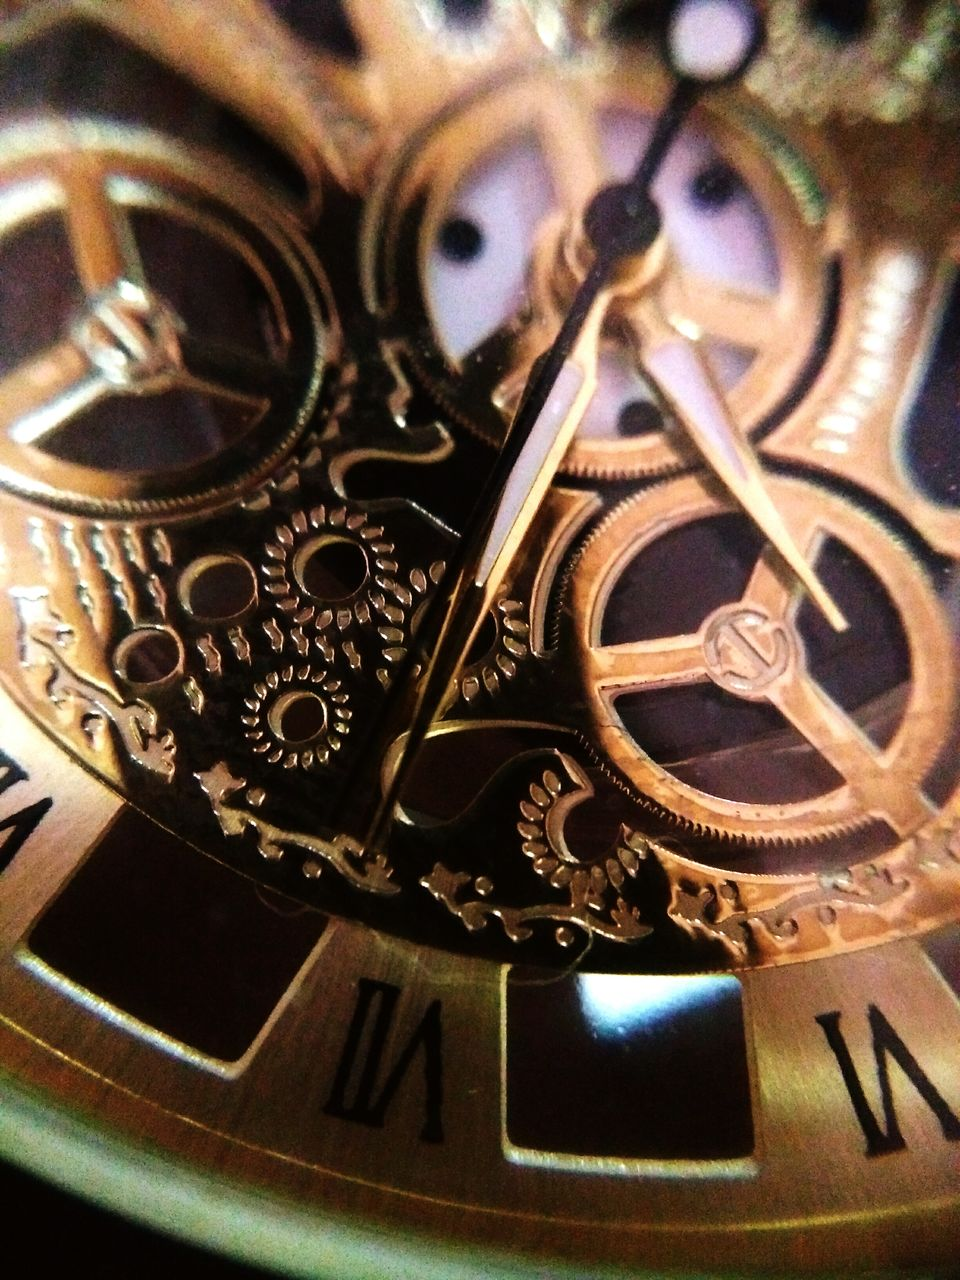 close-up, metal, time, watch, indoors, no people, clock, still life, equipment, number, instrument of time, pattern, machinery, technology, machine part, selective focus, high angle view, focus on foreground, gold colored, complexity, personal accessory